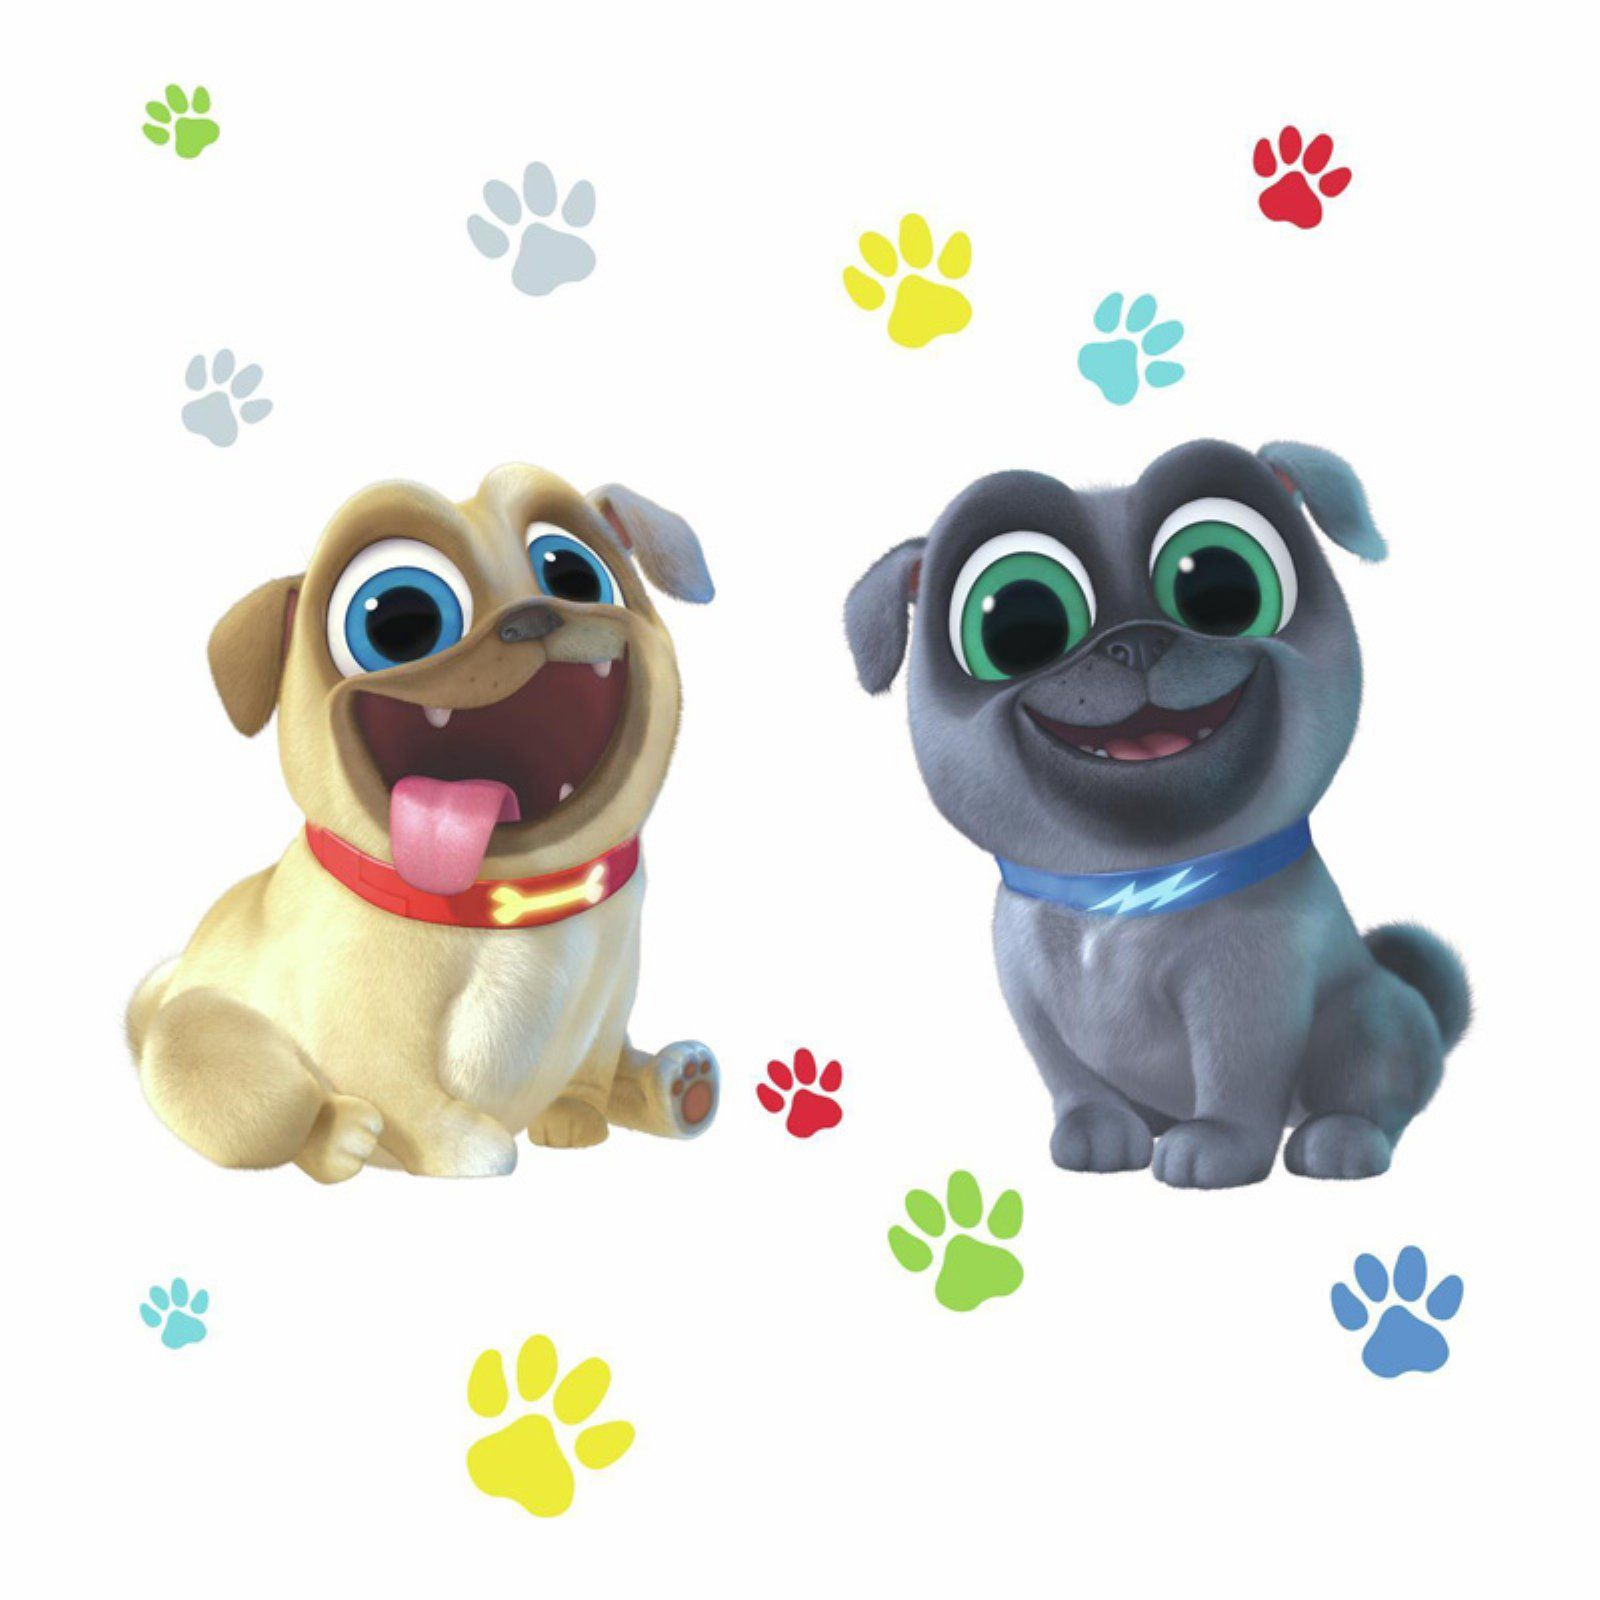 Roommates Puppy Dog Pals Peel And Stick Giant Wall Decals Puppy Paws Puppy Paw Prints Dogs And Puppies